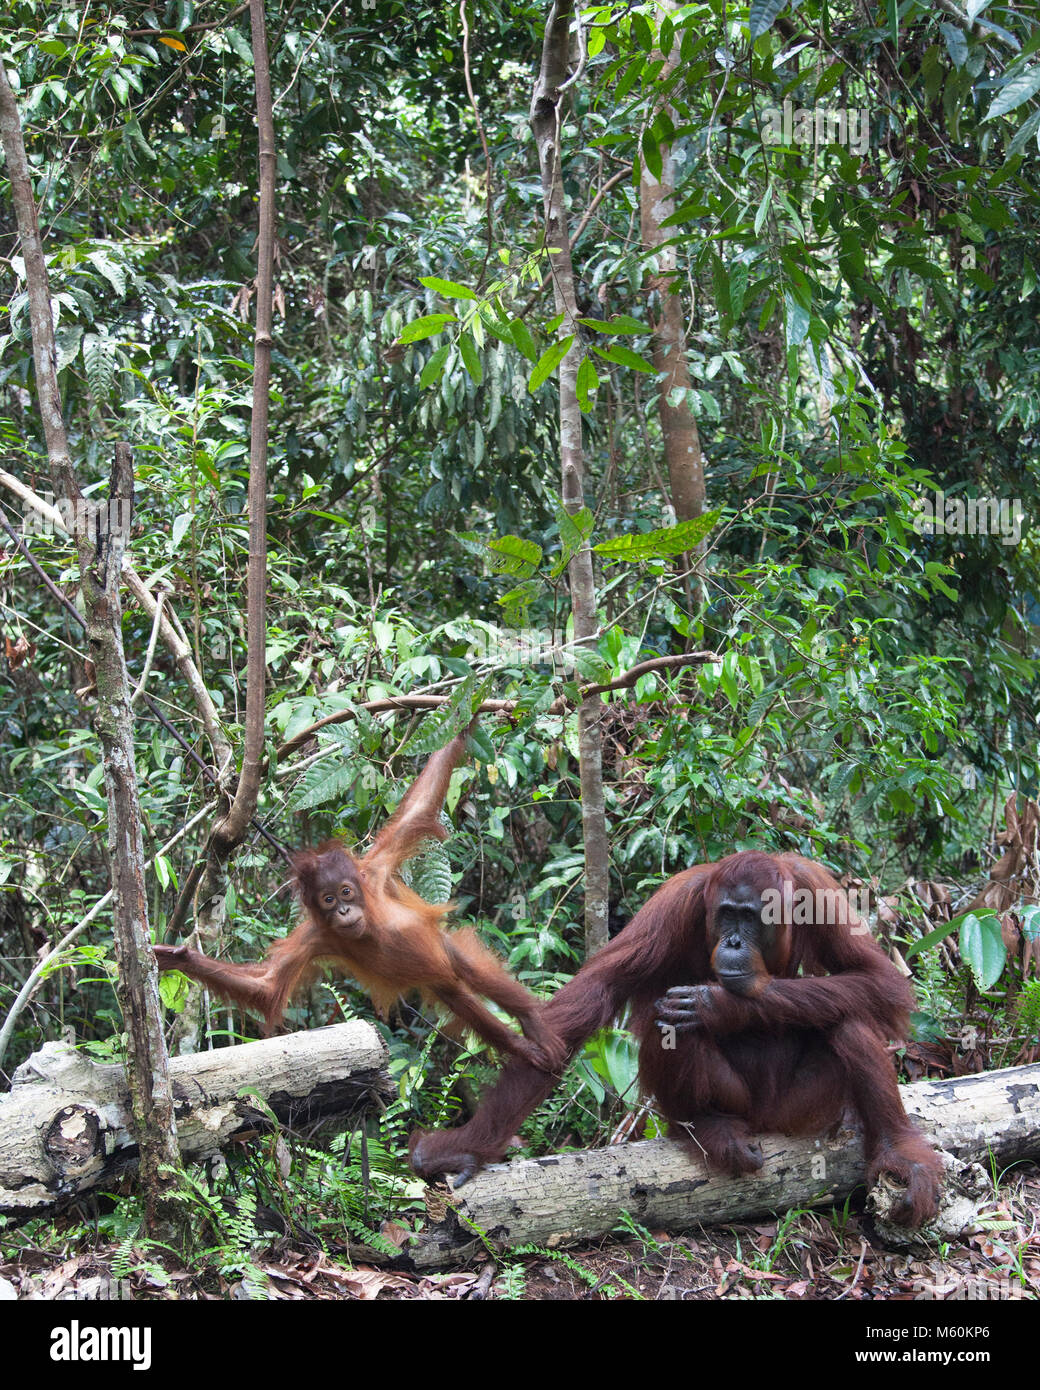 Two year old wild Bornean orangutan (Pongo pygmaeus) standing on mother's arm as she sits on a log in Tanjung - Stock Image